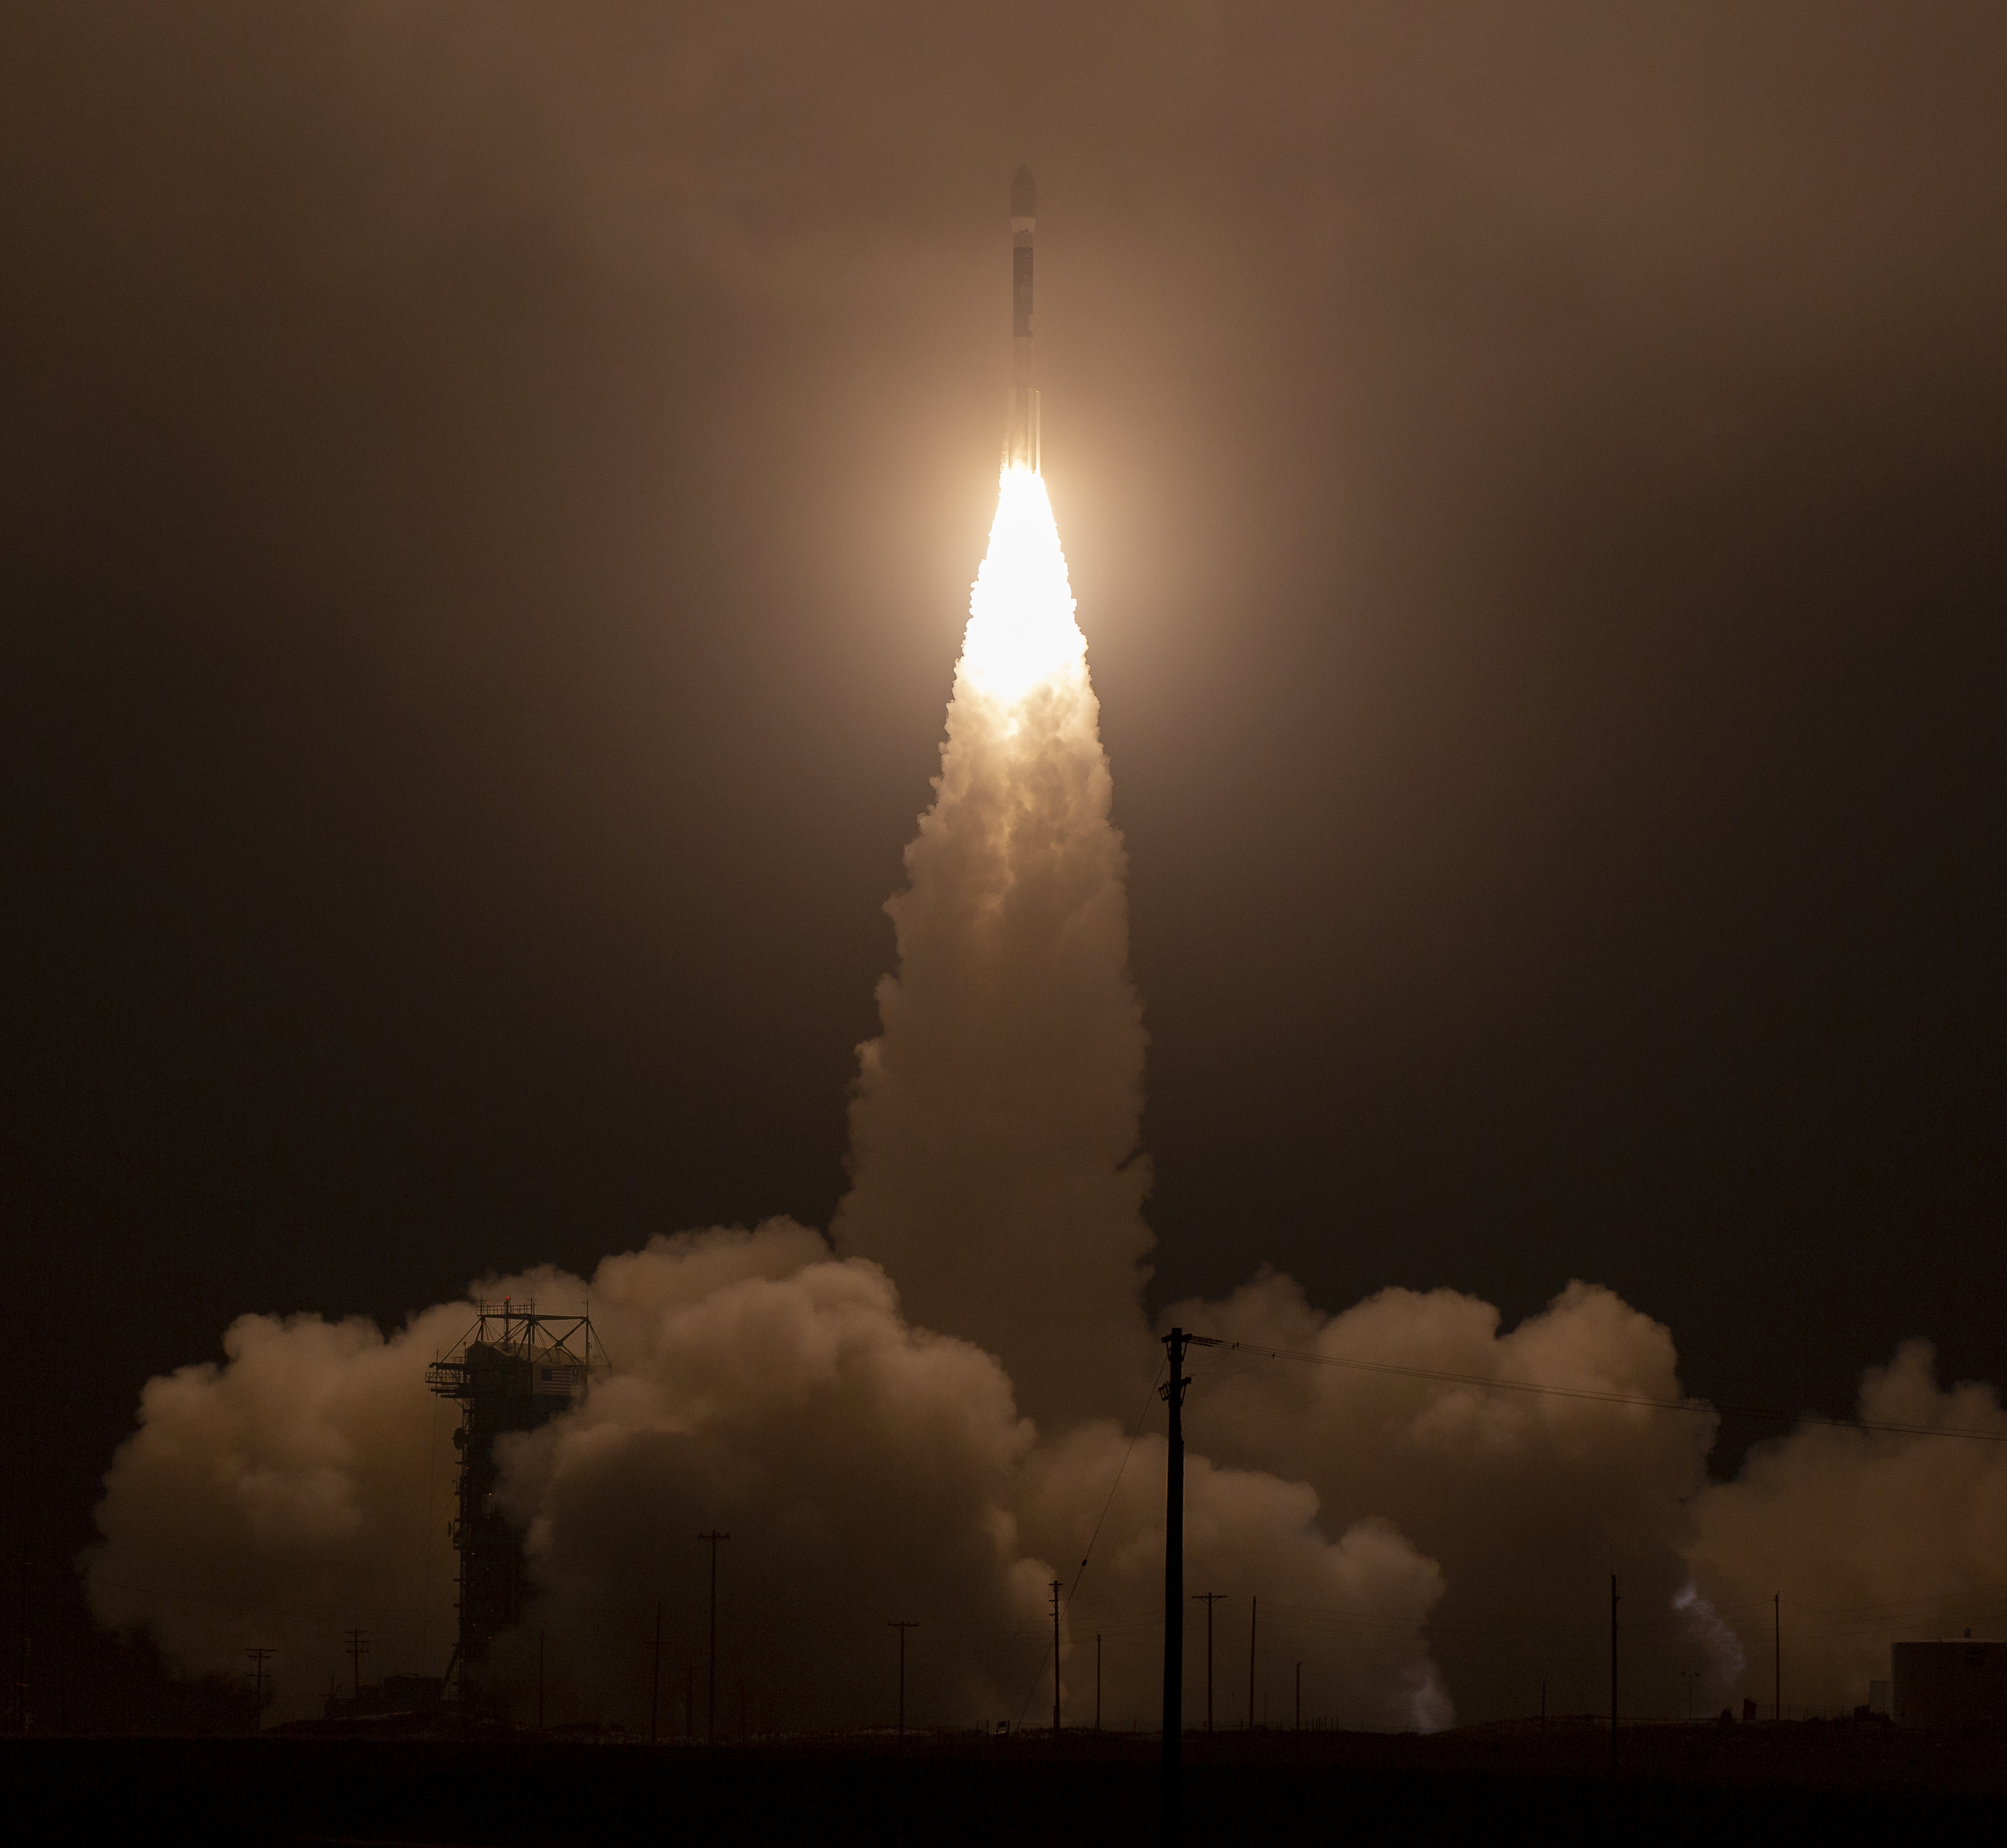 The United Launch Alliance (ULA) Delta II rocket is seen as it launches with the NASA Ice, Cloud and land Elevation Satellite-2 (ICESat-2) onboard, Saturday, Sept. 15, 2018. Photo Credit: (NASA/Bill Ingalls)